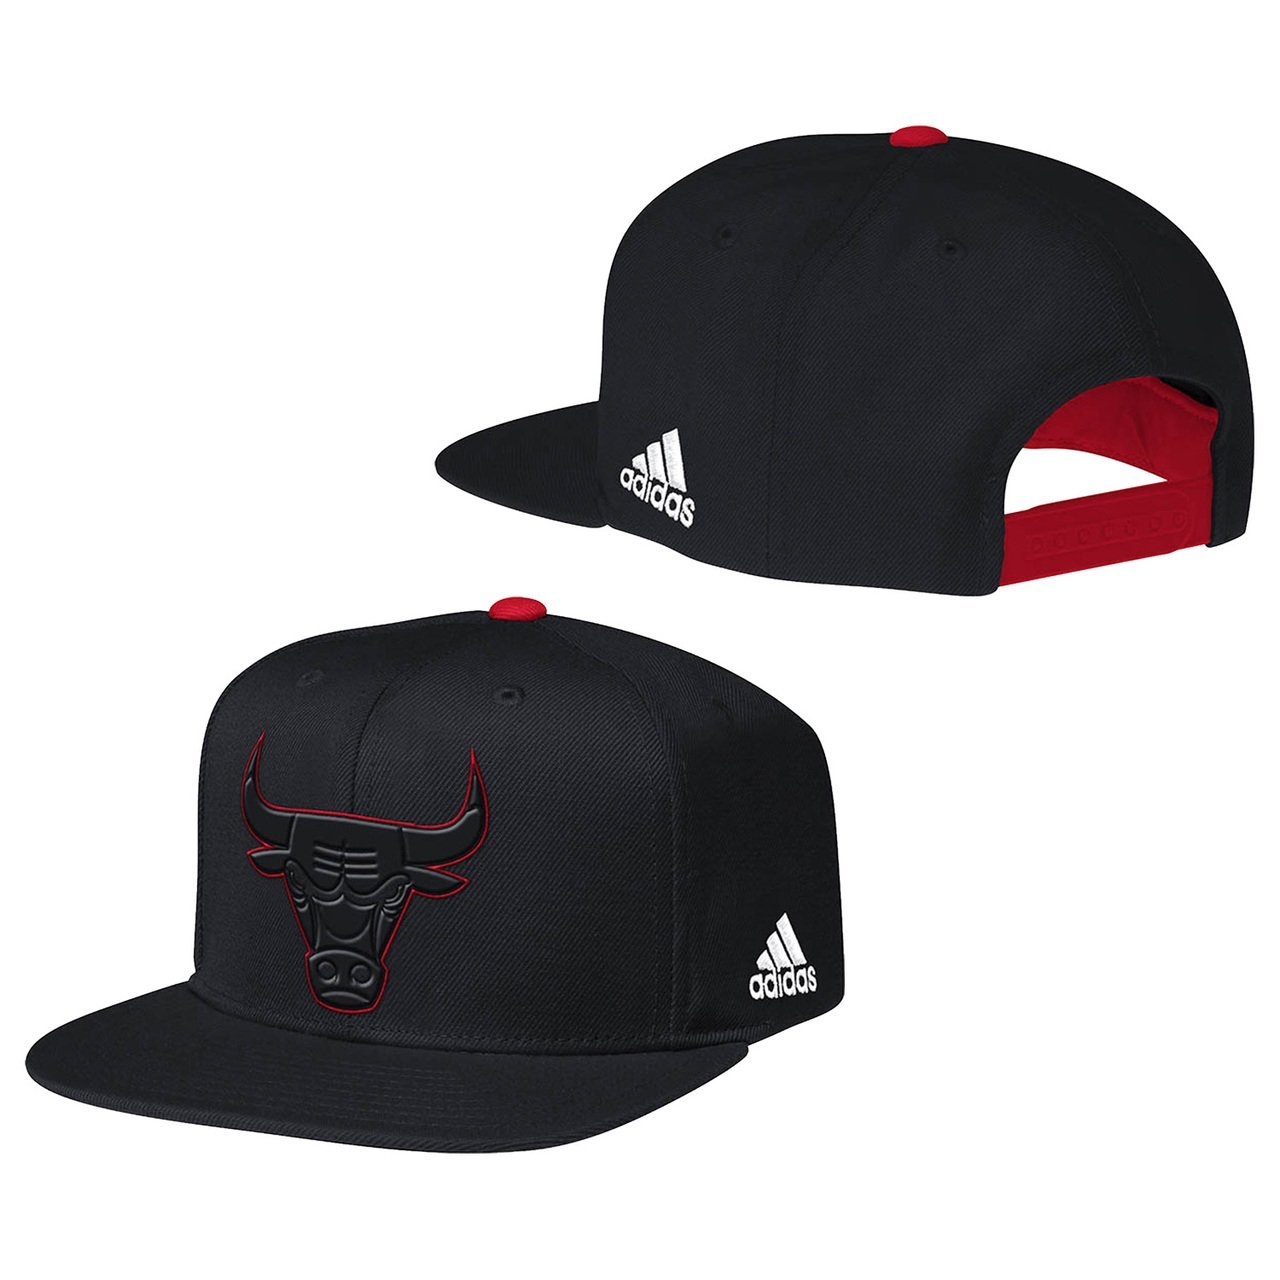 486c62870a3 Get Quotations · Chicago Bulls Team Nation Fashion Color Adjustable Plastic  Snapback Hat   Cap